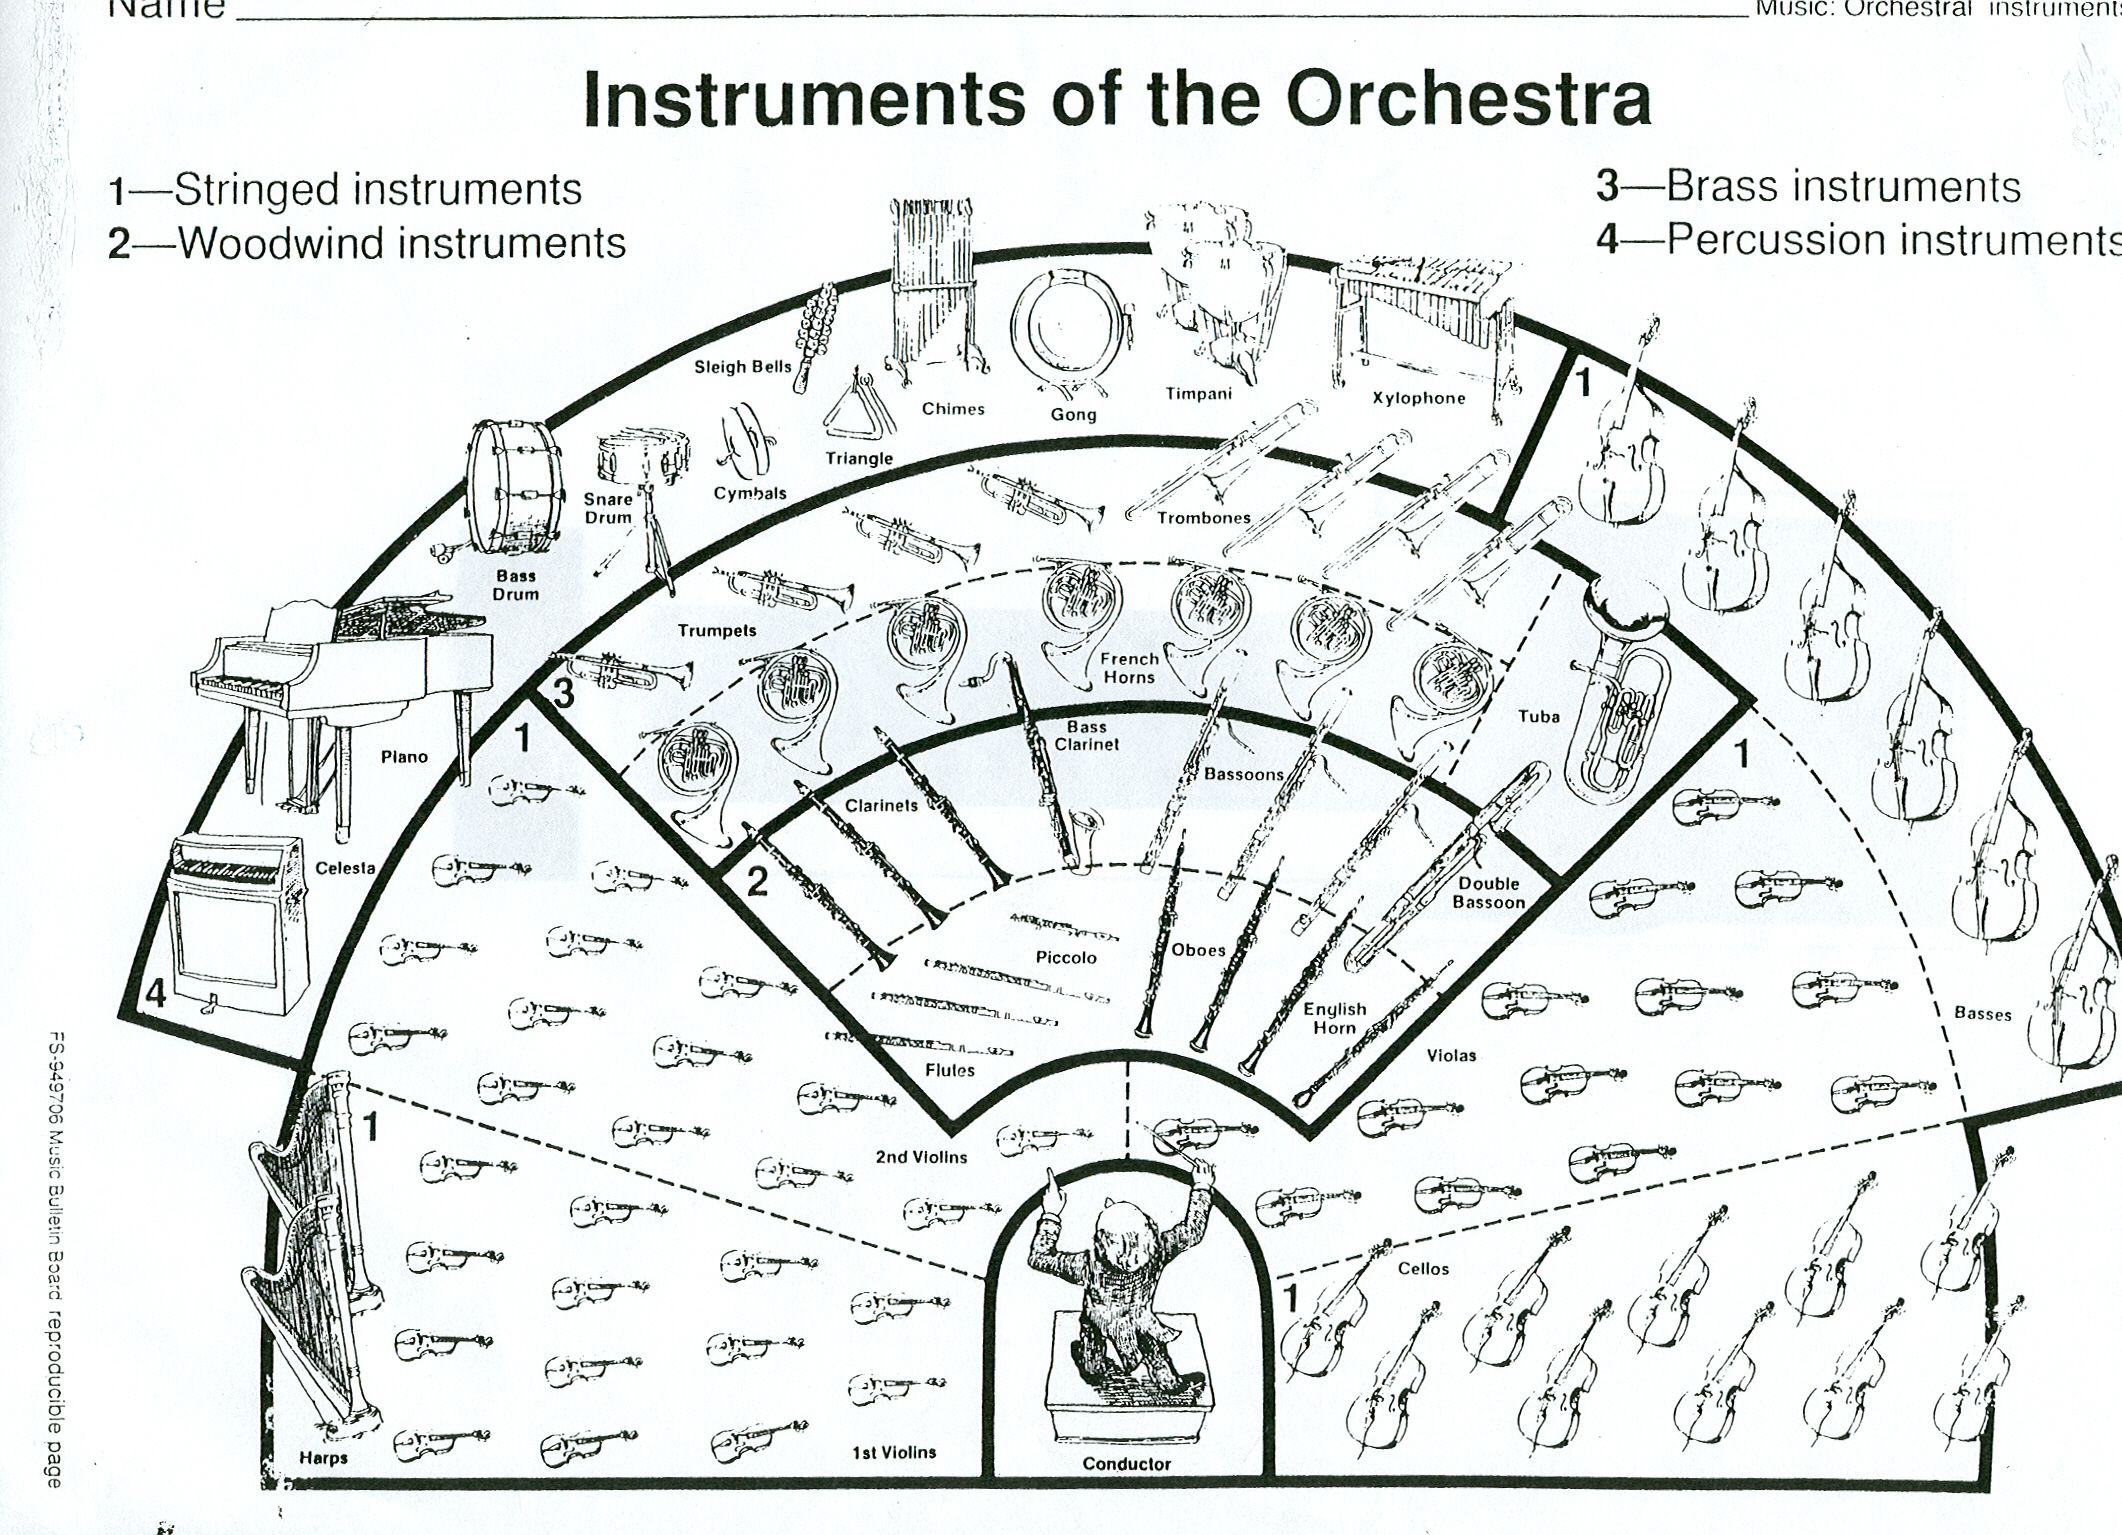 Pin By Amanda Hinson On Learning About The Symphony Orchestra